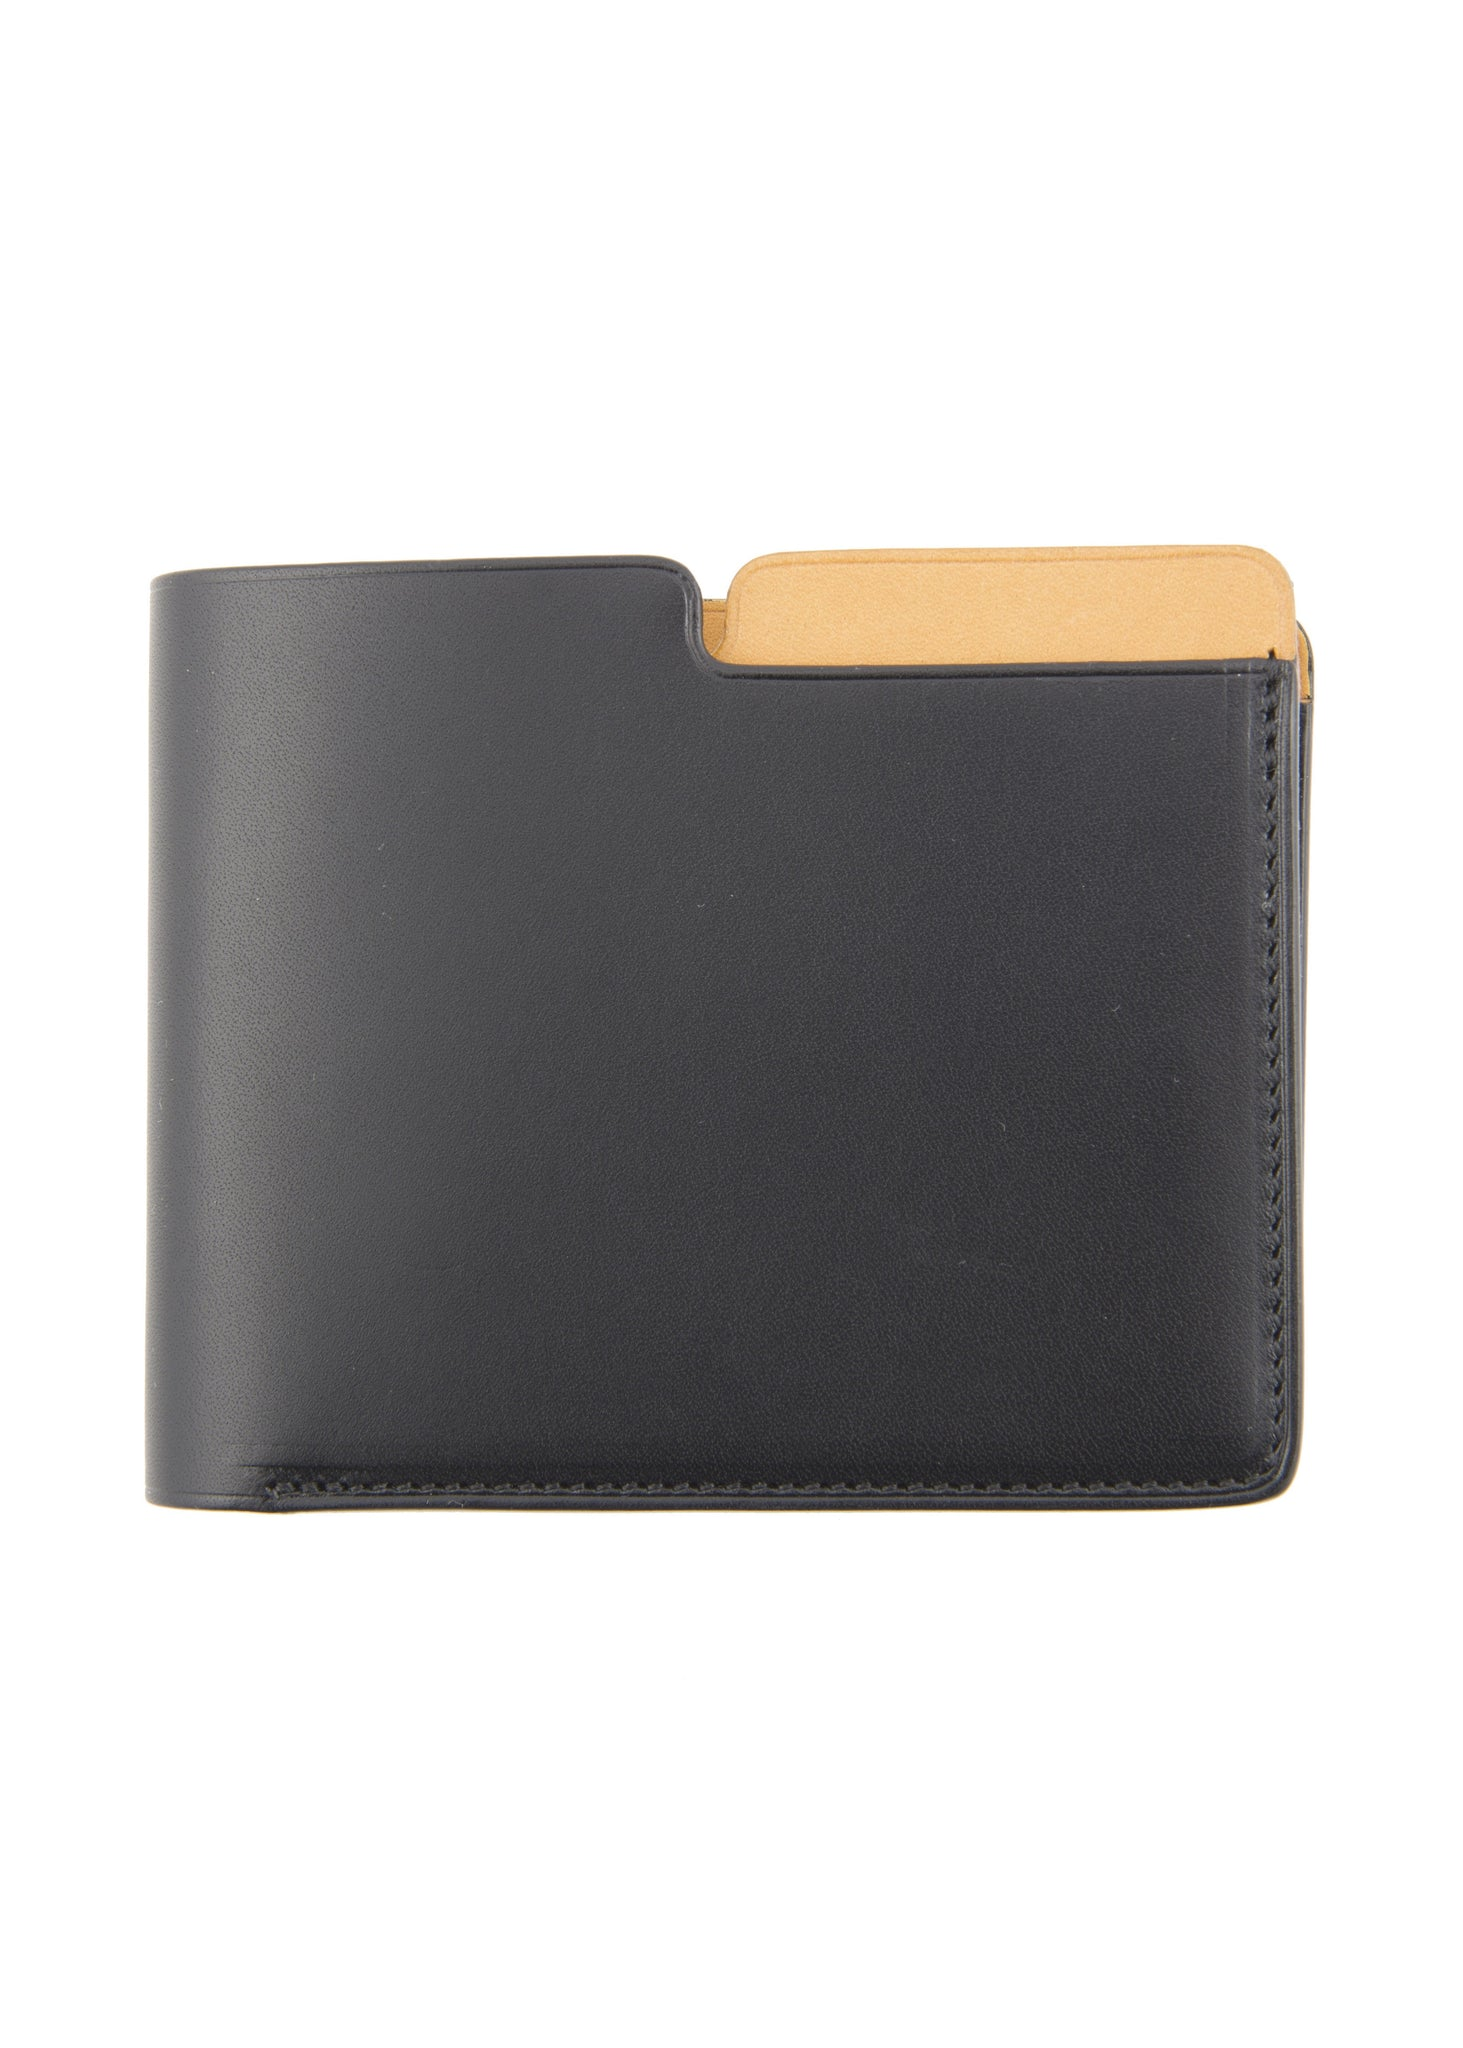 Portefeuille CLASSIFY en Cuir Noir|Black CLASSIFY Bifold Leather Wallet